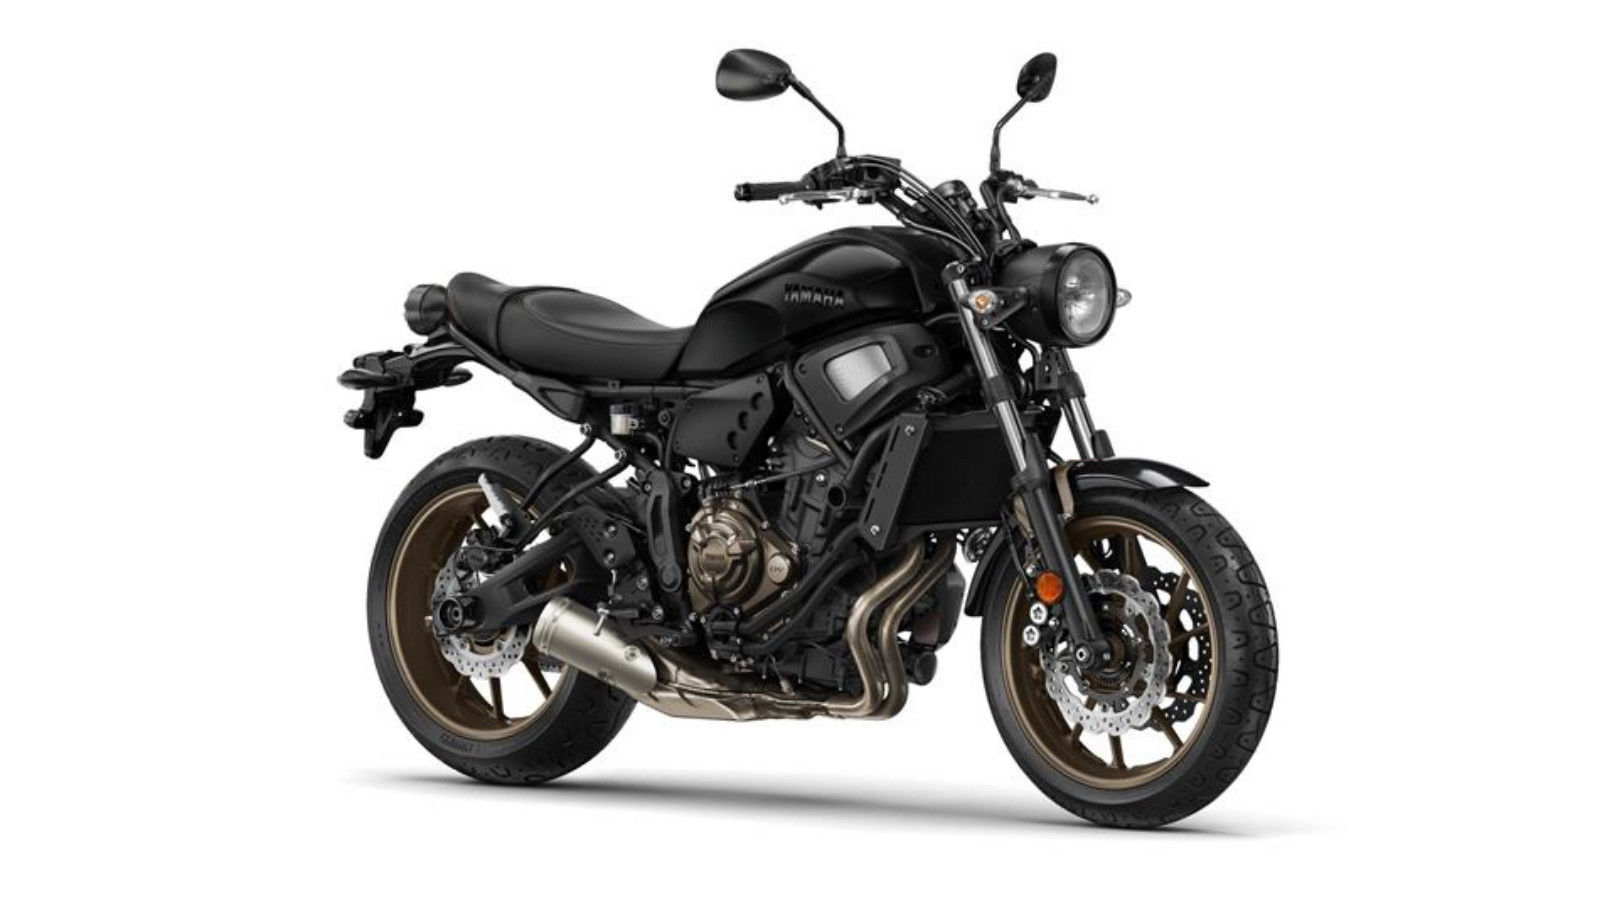 XSR700 ABS Modell 2018 TECH BLACK SOFORT!